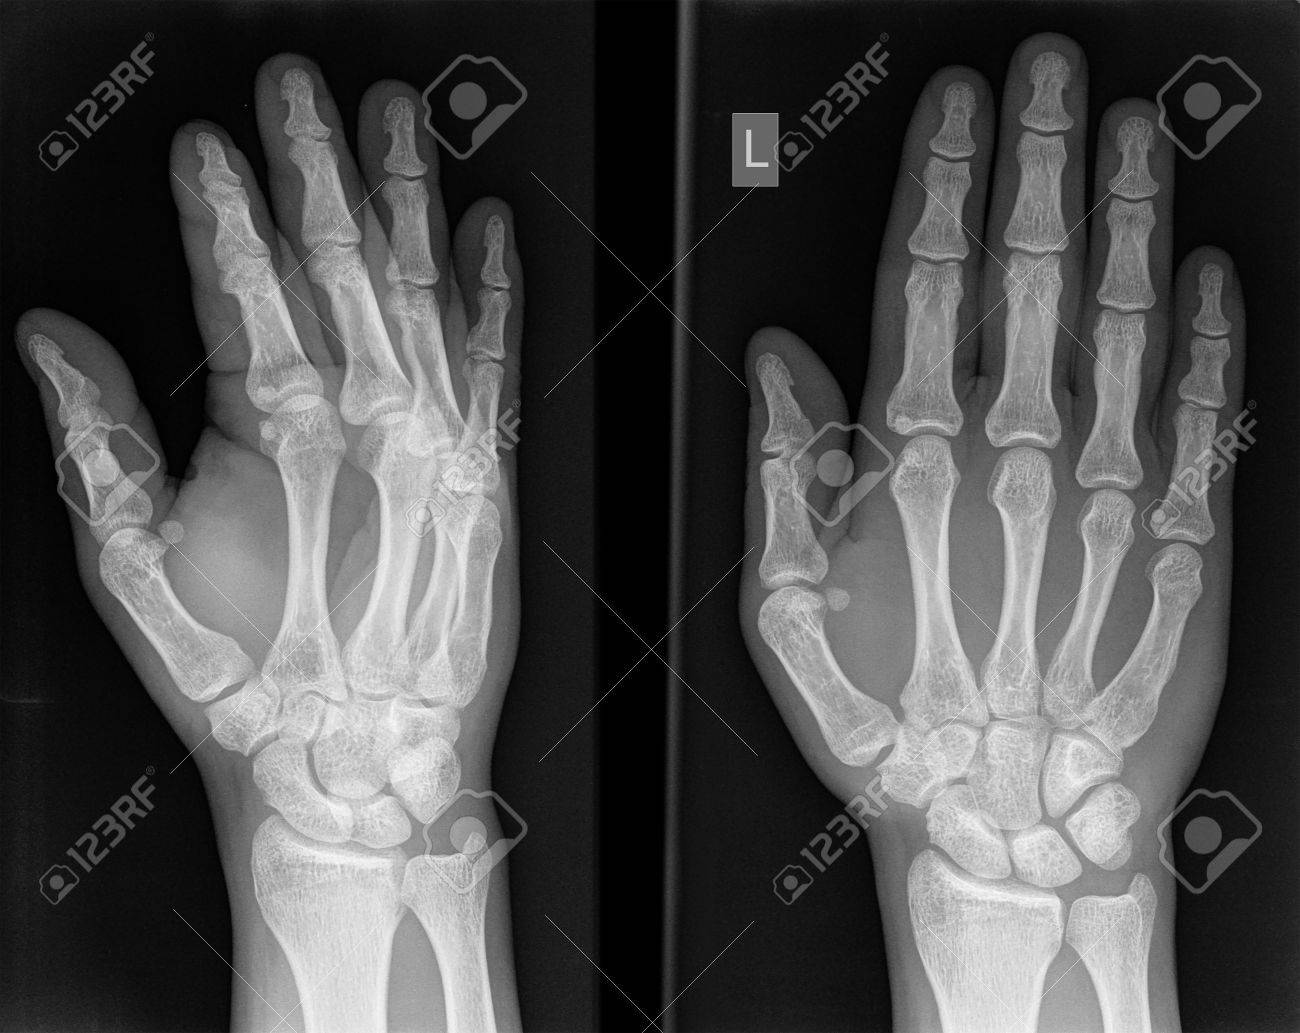 X-ray Inspection Of The Right Hand Of The Man. Stock Photo, Picture ...